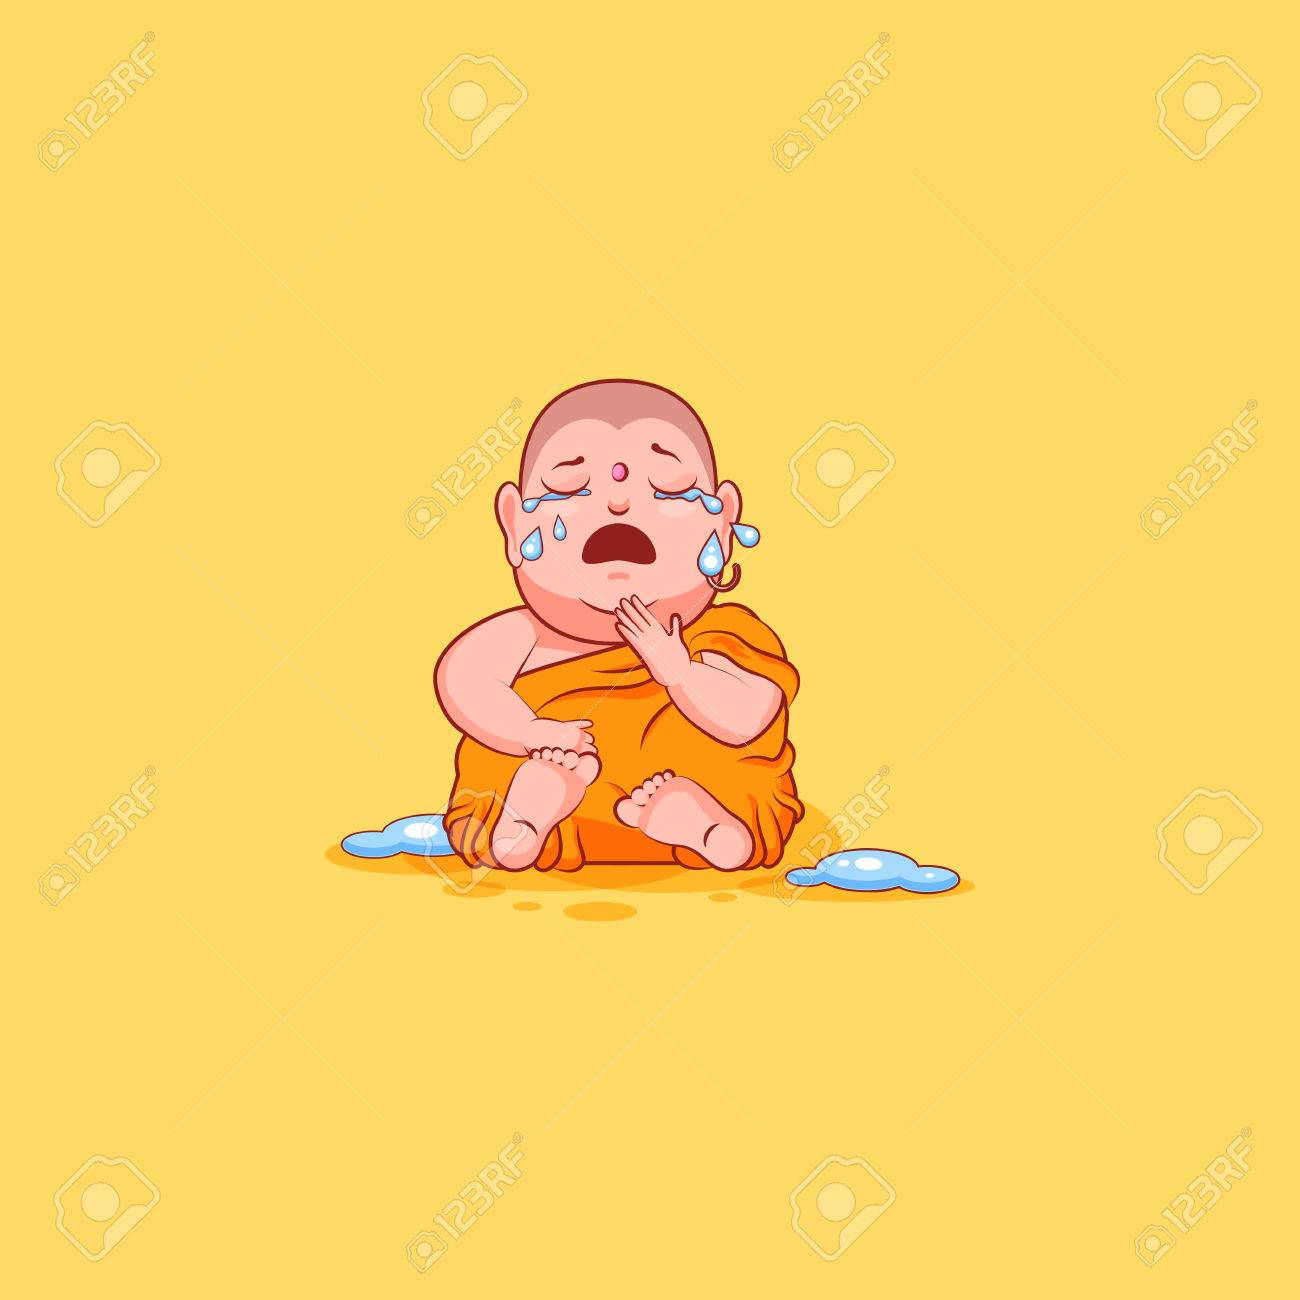 Sticker emoji emoticon emotion vector isolated illustration sticker emoji emoticon emotion vector isolated illustration unhappy character cartoon buddha crying stock vector 77954437 biocorpaavc Image collections